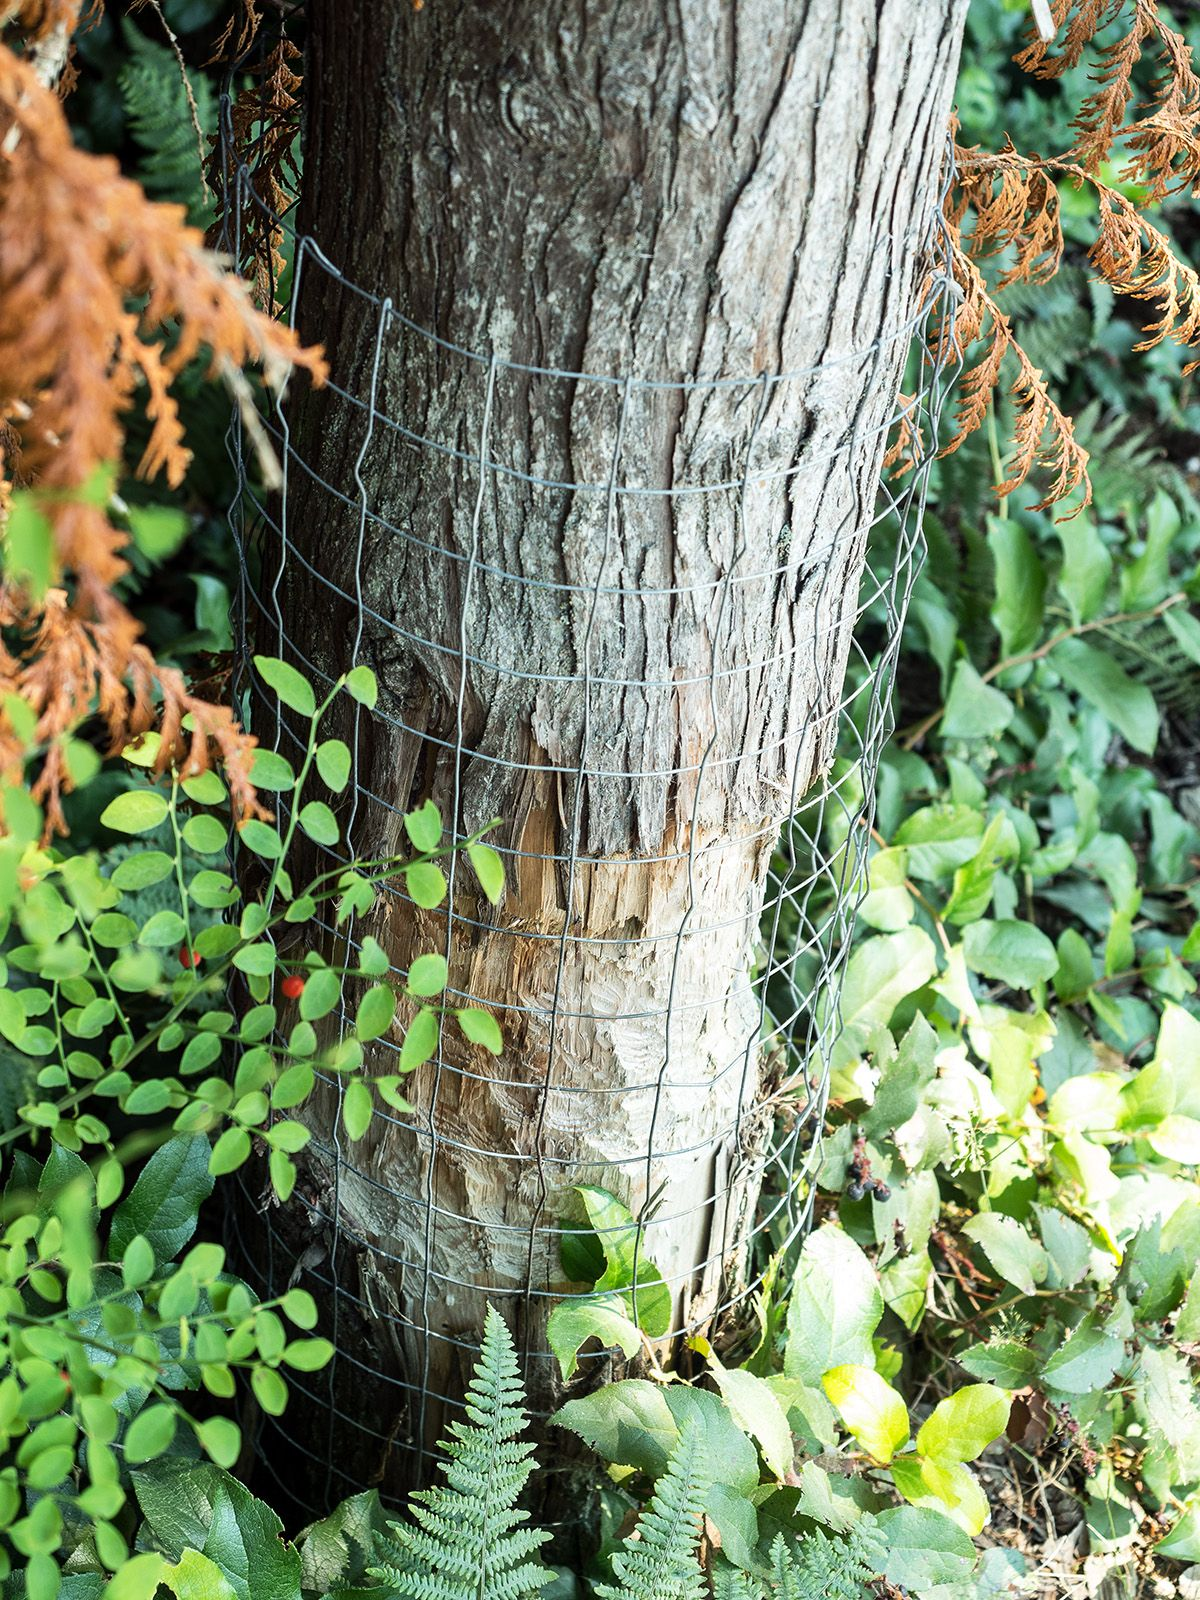 A close-up of a tree trunk wrapped in chicken wire. The trunk has been chewed by a beaver.